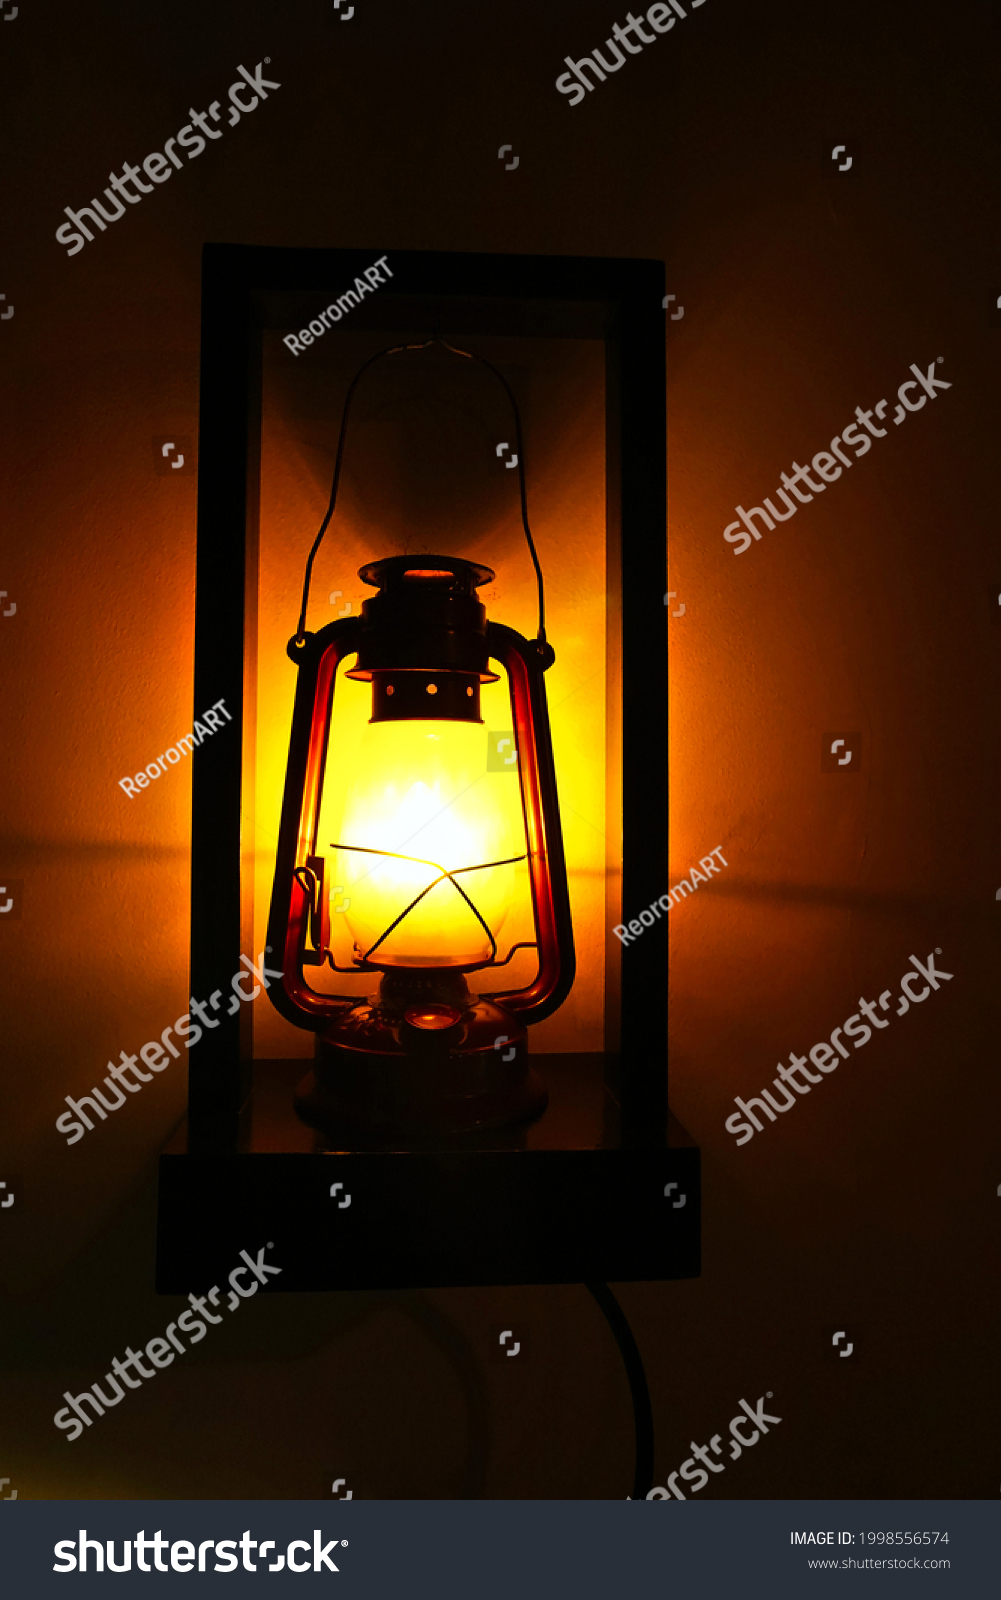 Old lantern in a room as a decoration. It is illuminated.